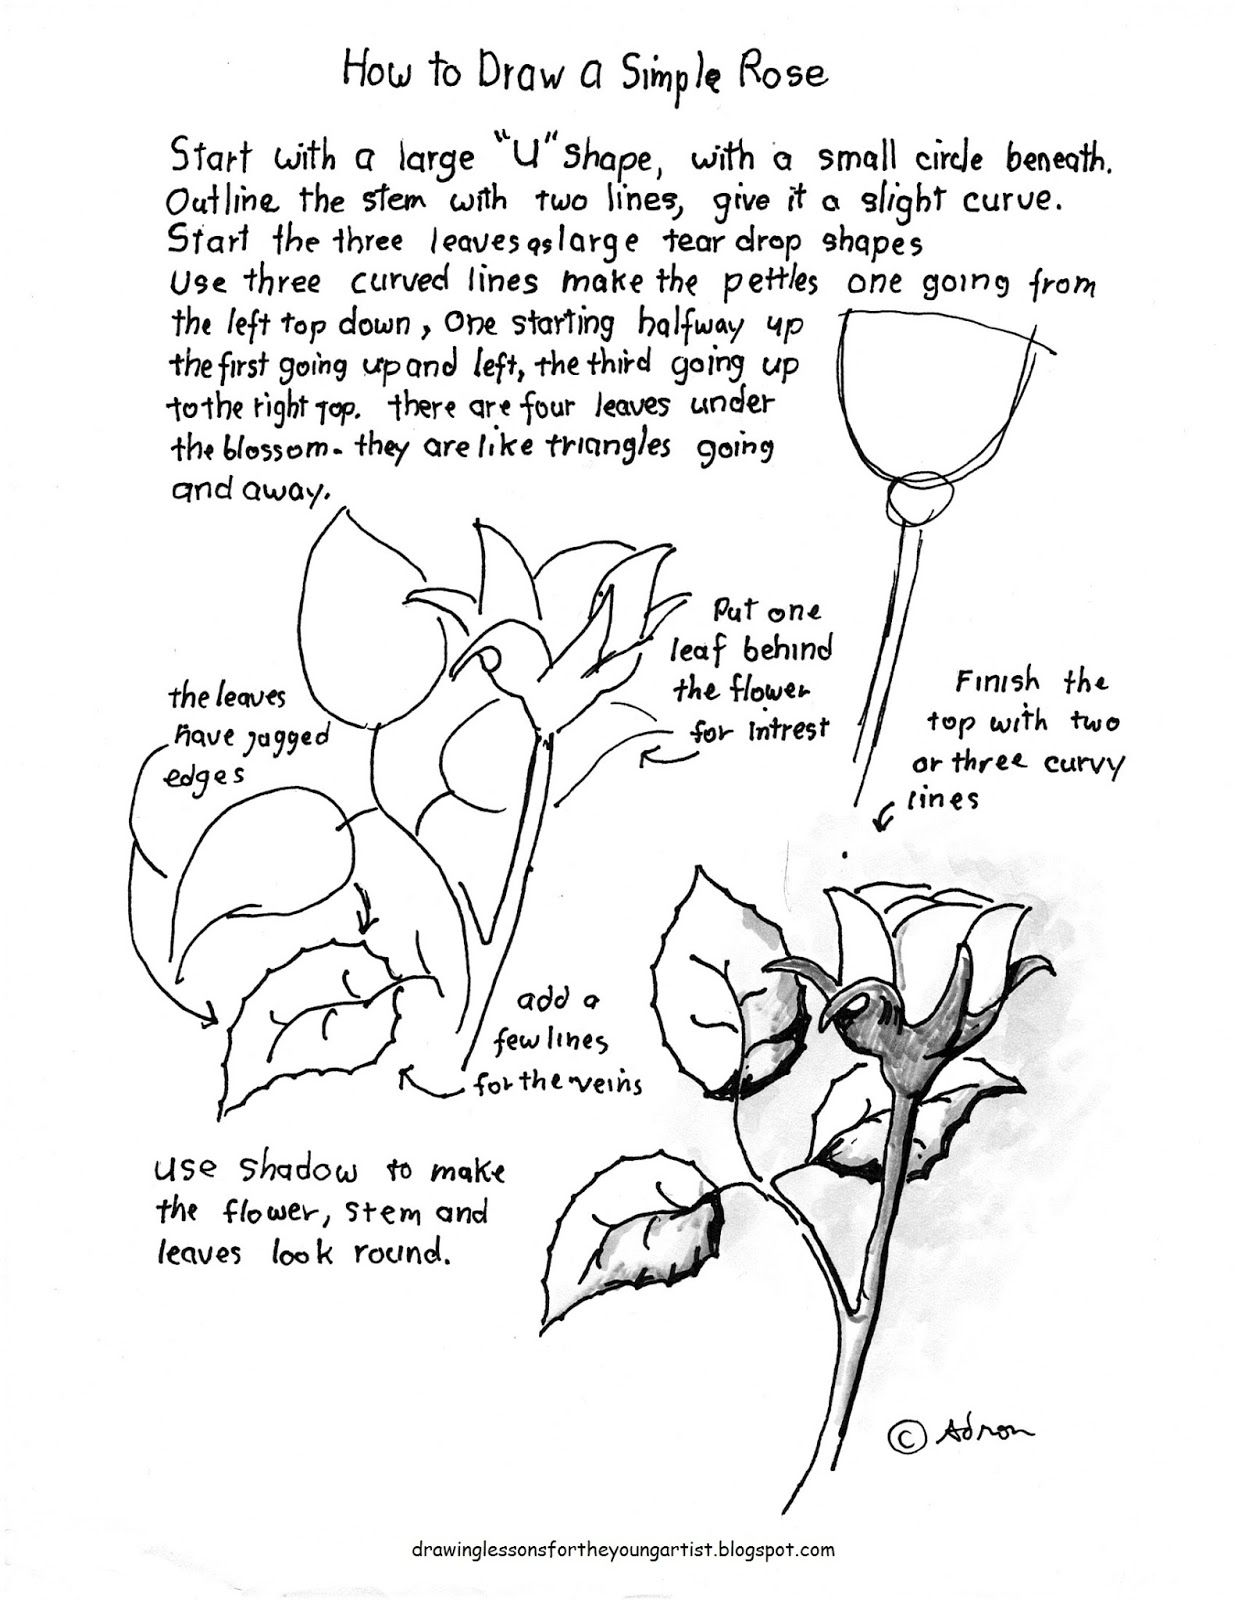 How To Draw A Simple Rose Lesson And Worksheet